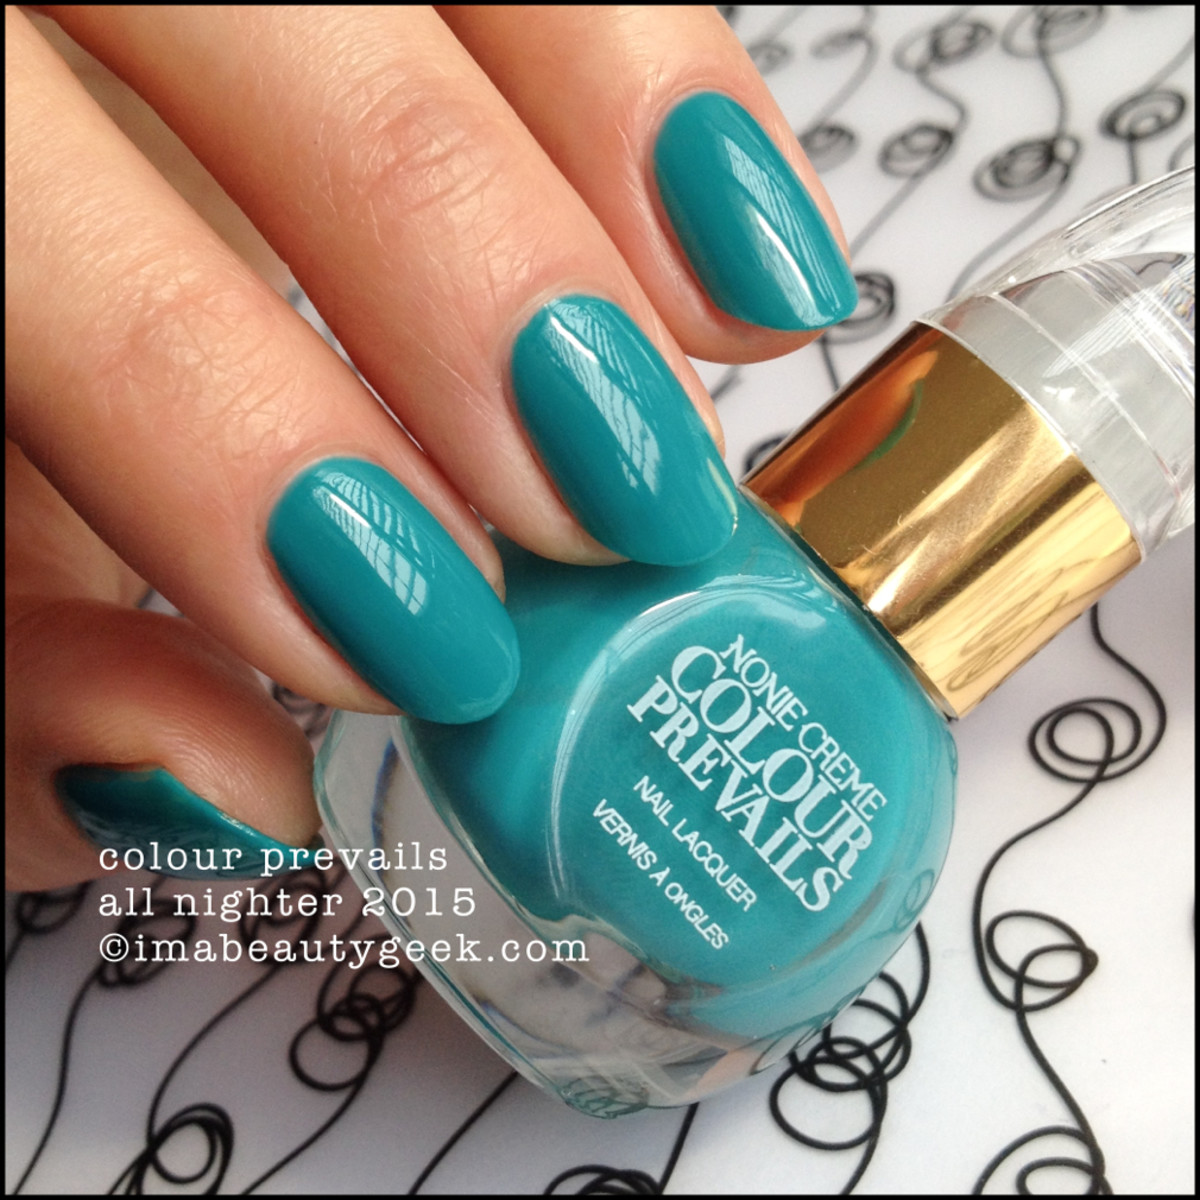 Colour Prevails All Nighter Nail Lacquer by Nonie Creme